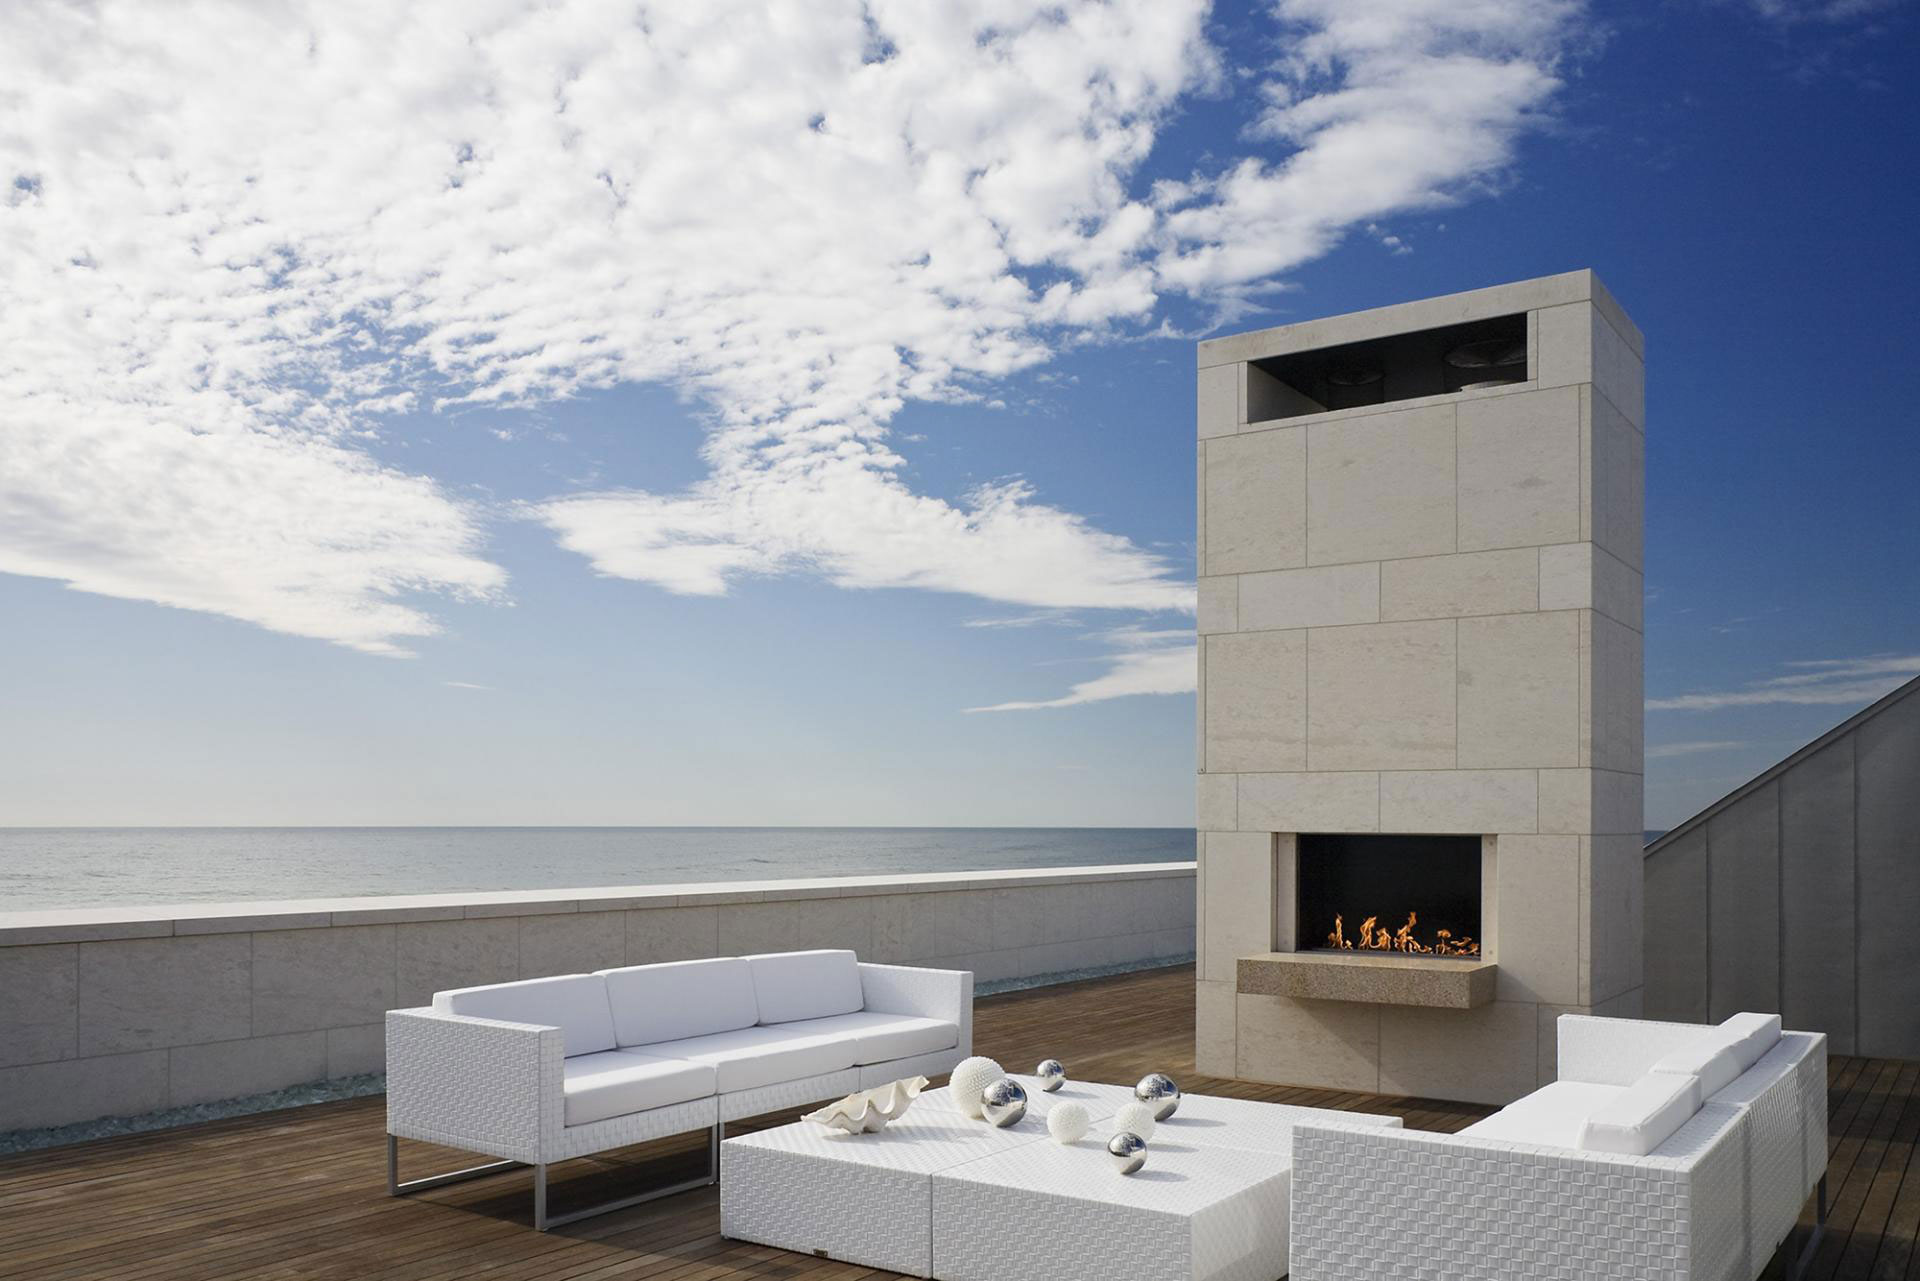 Roof Terrace, Outdoor Fireplace, Furniture, Summer Retreat in Southampton, New York